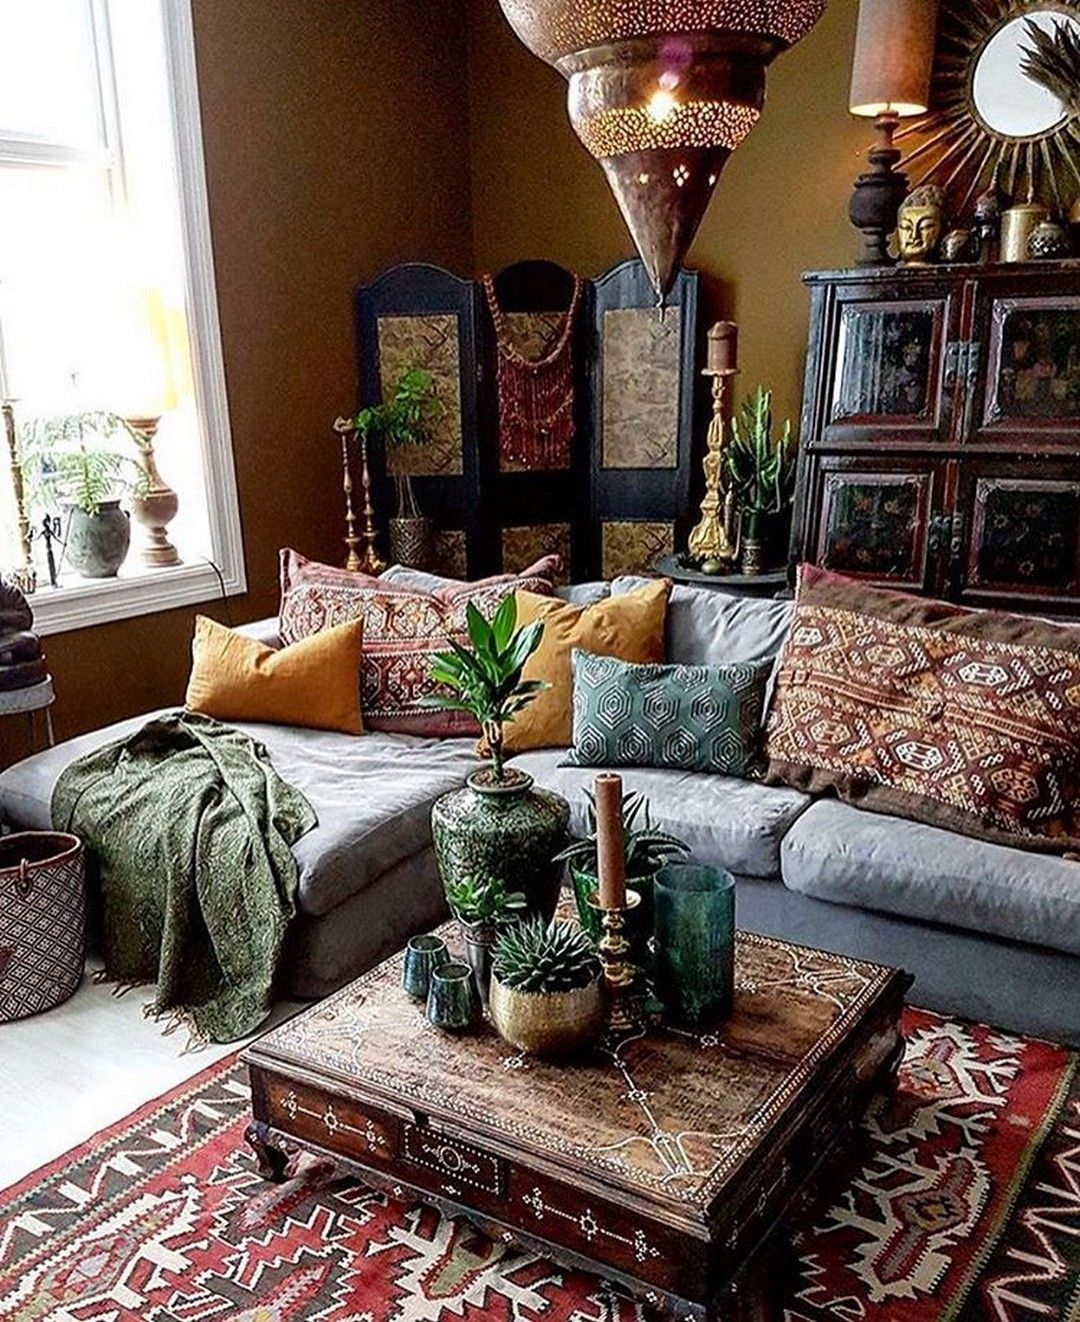 18 DIY Indoor Bohemian Decorating Ideas